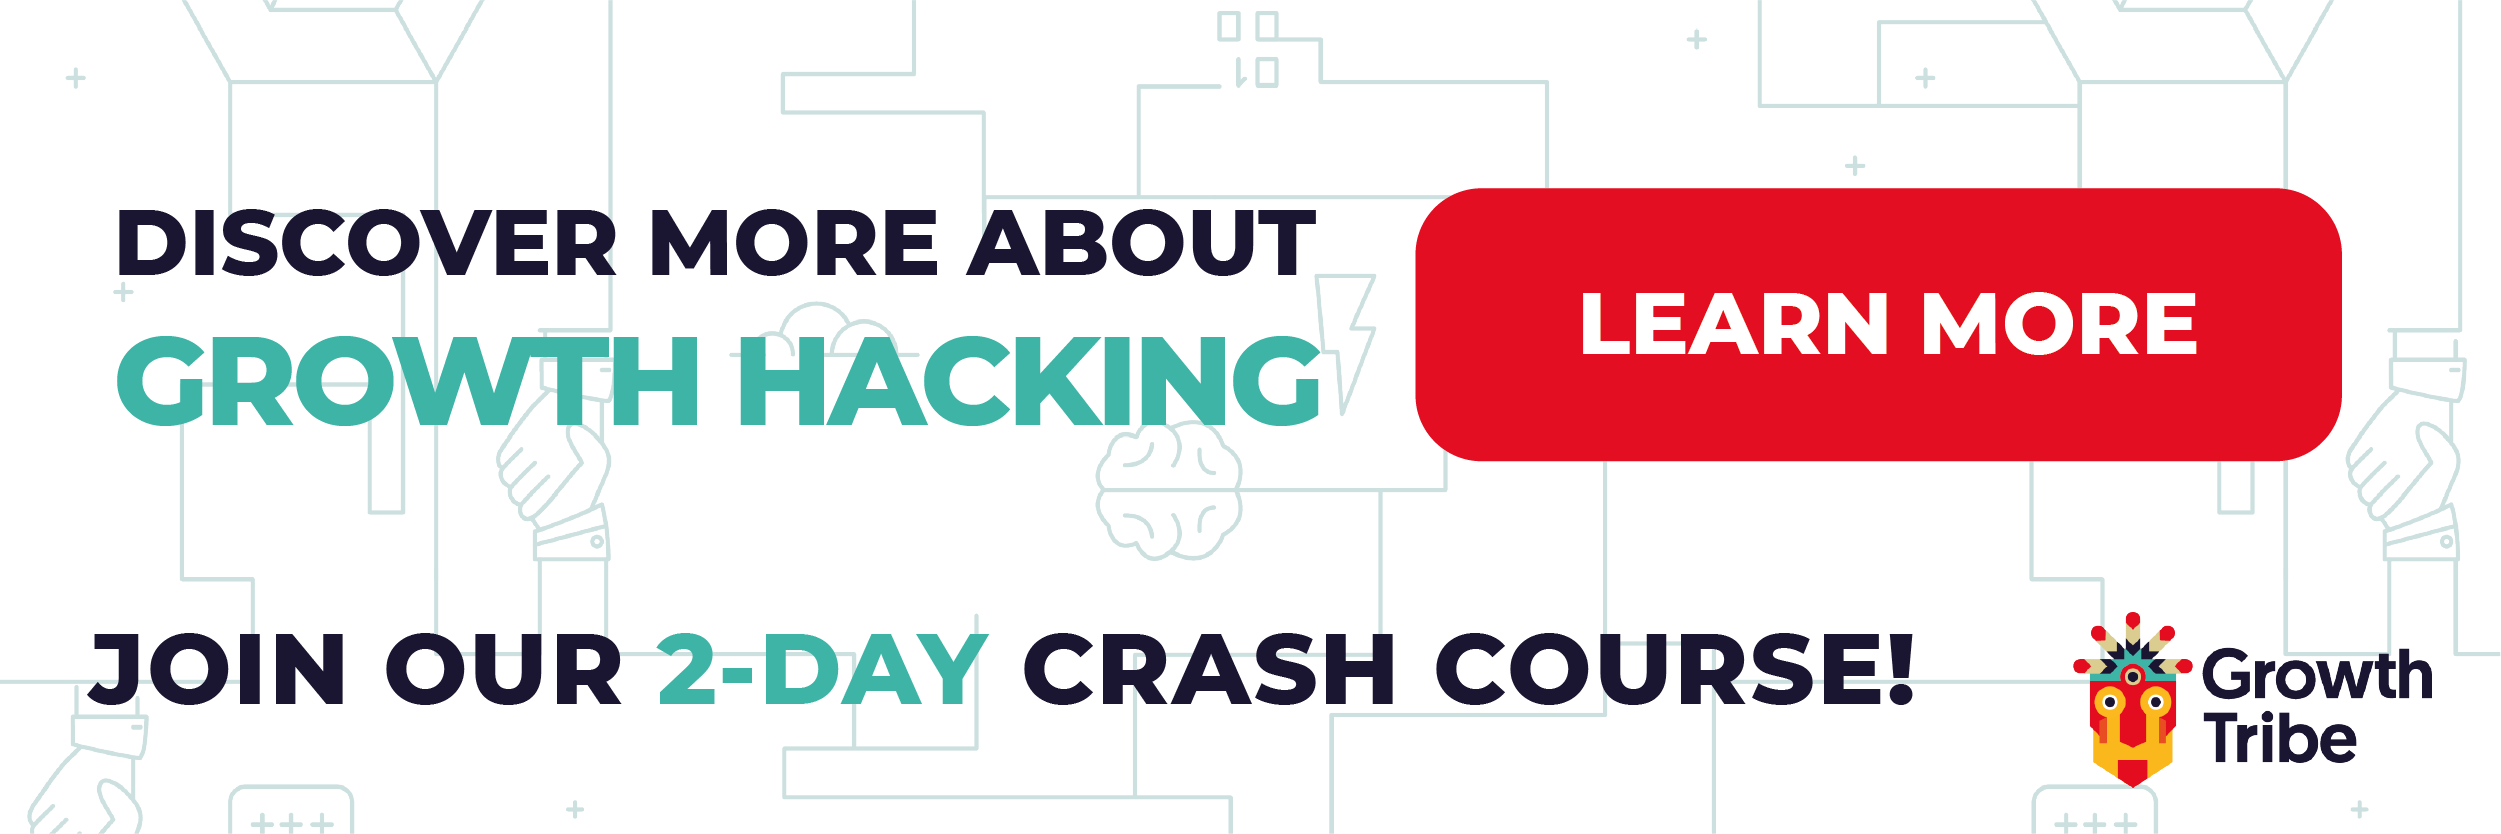 Learn Growth Hacking in 2 Days - Learn More